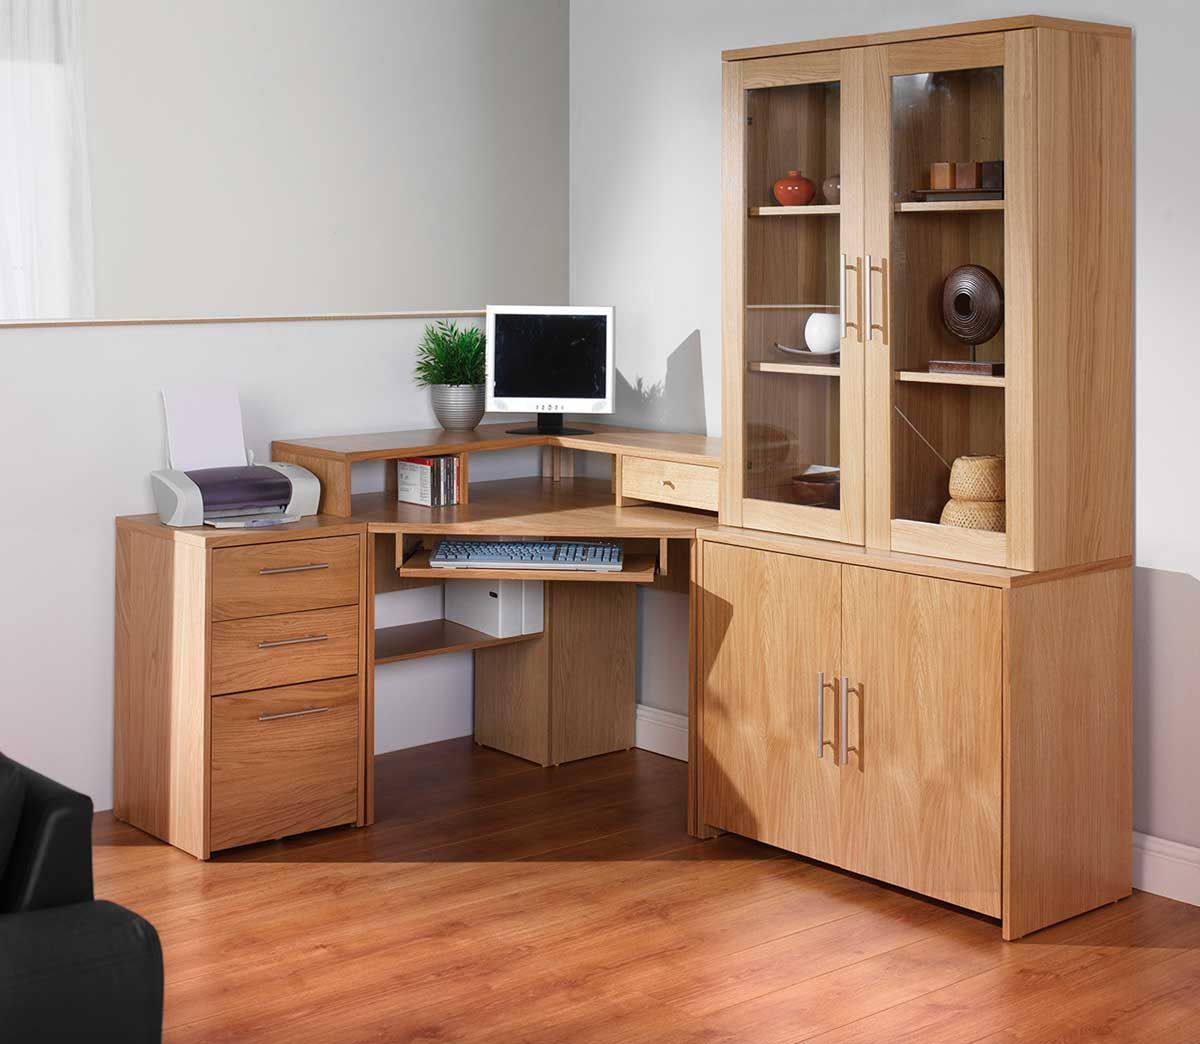 lush computer furniture design made from wood with drawer fantastic white wall interior decoration office modern home desk set ama desks storage